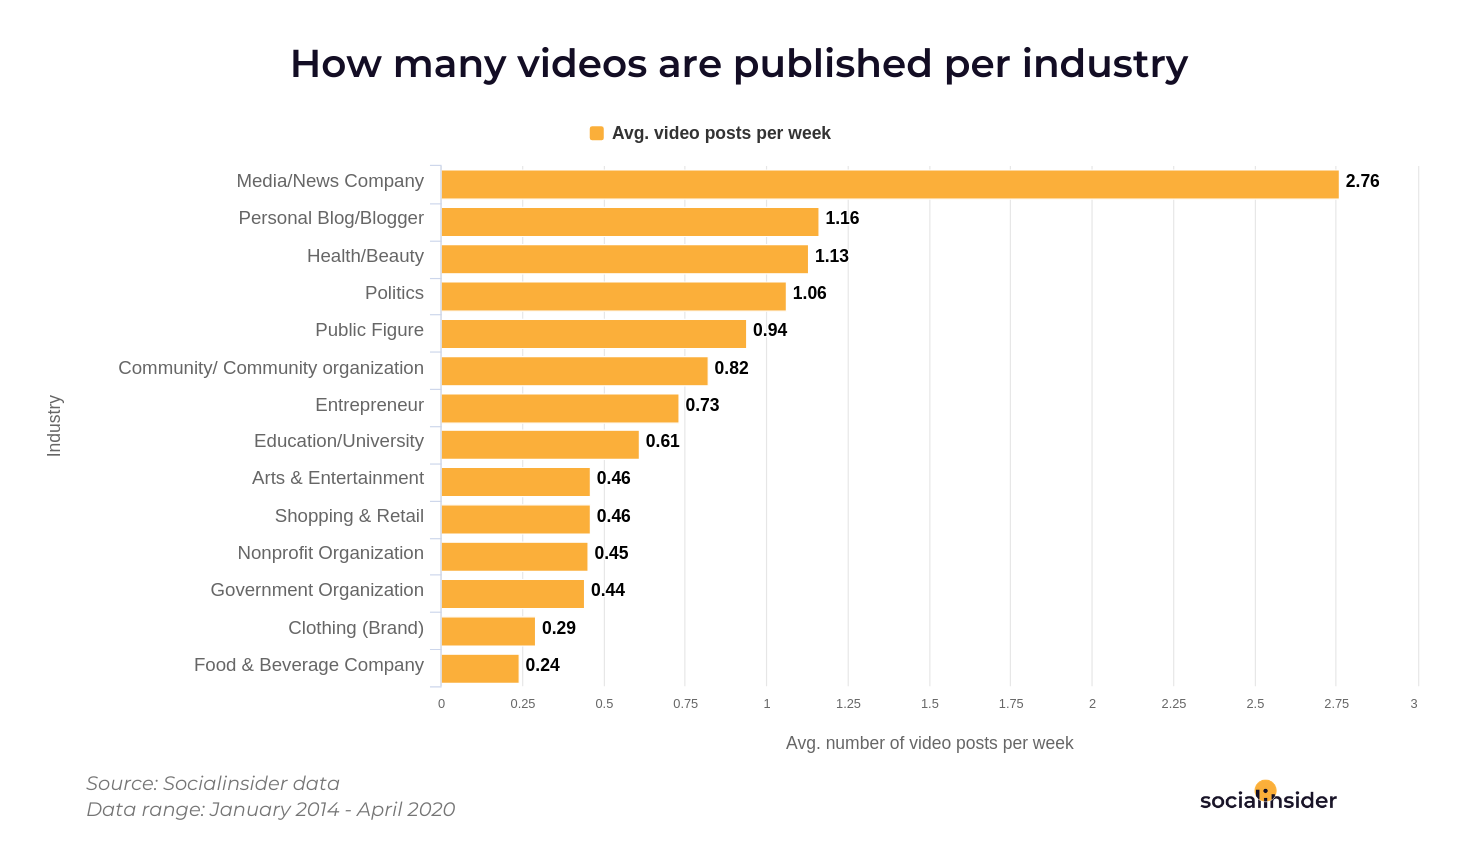 Industries who post the most videos